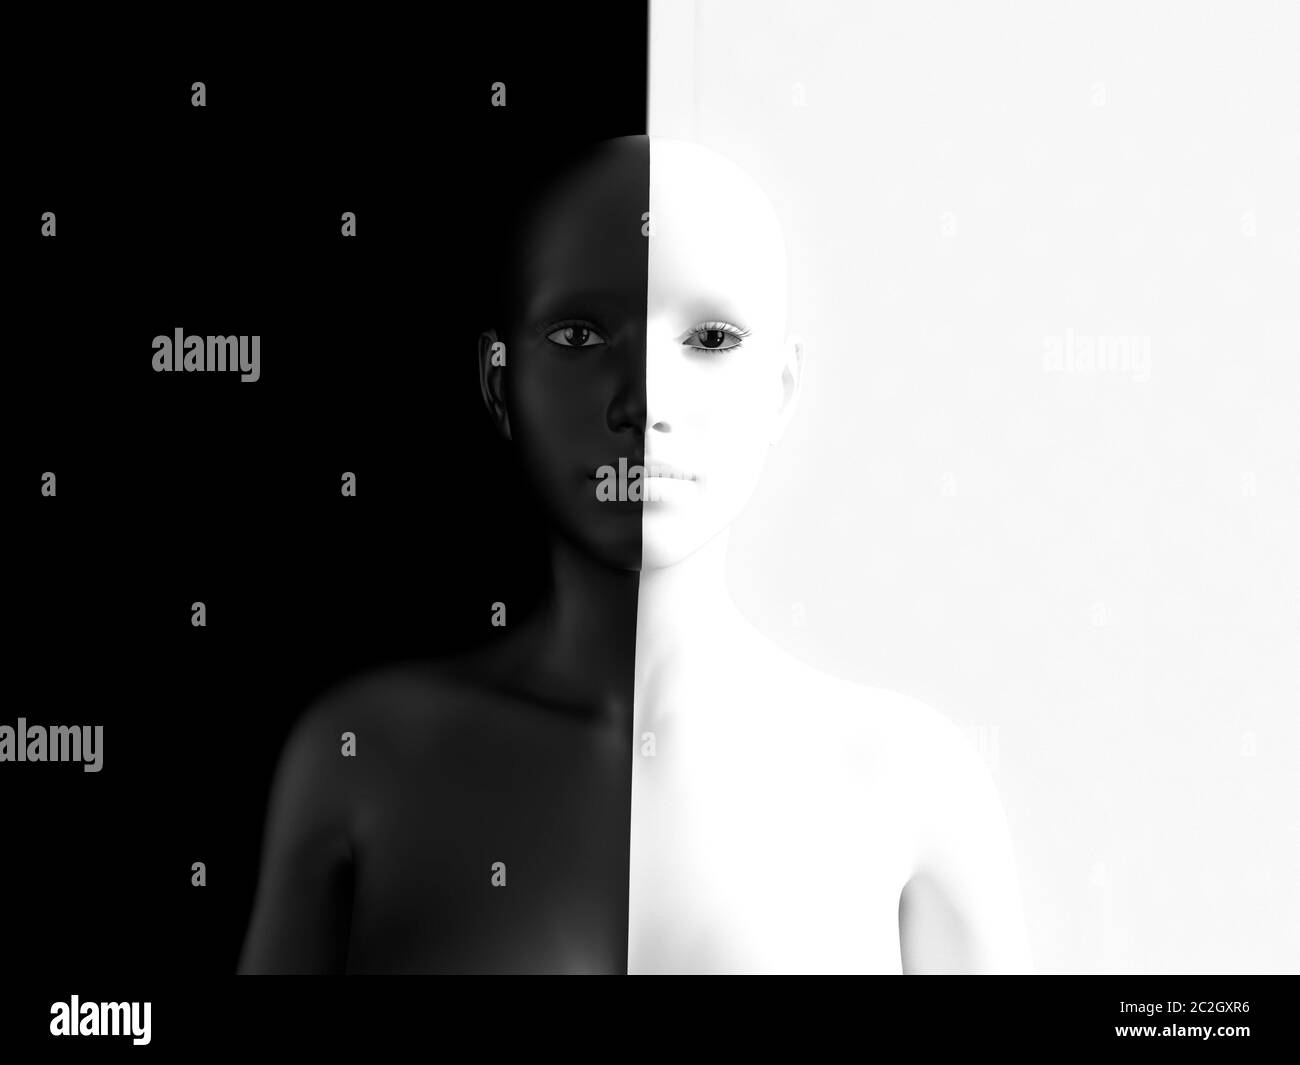 3D rendering of a woman half colored black and the other half white, blending in with the background, afraid to show her true colours. She is standing Stock Photo